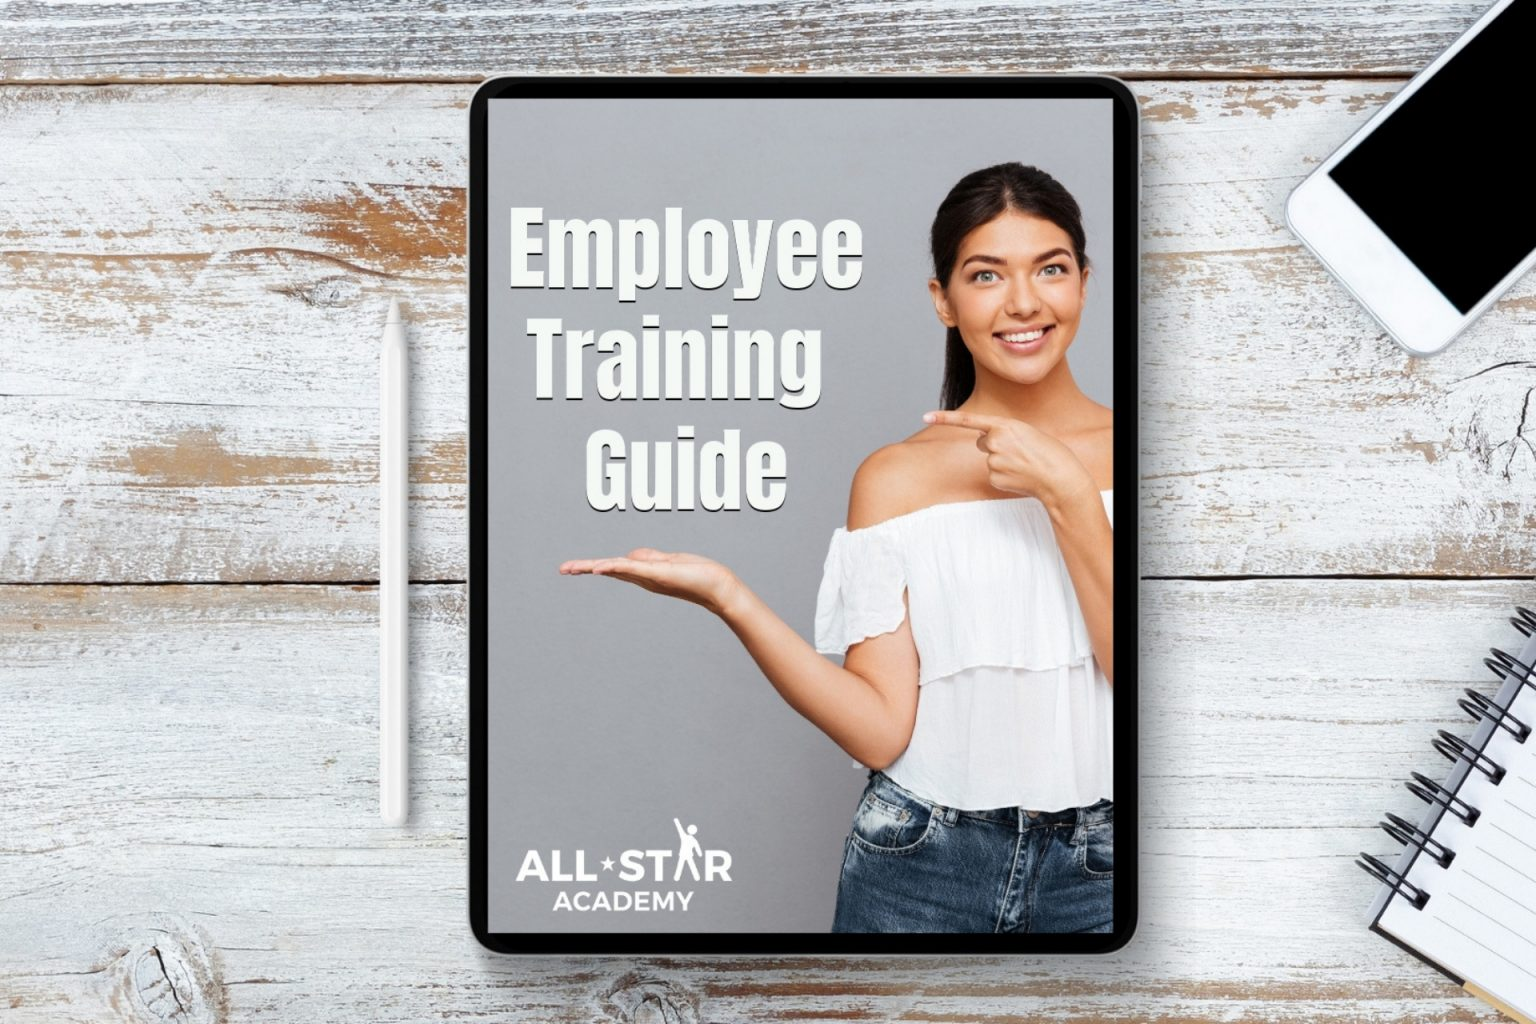 All-Star Academy Guide: Employee Training Guide